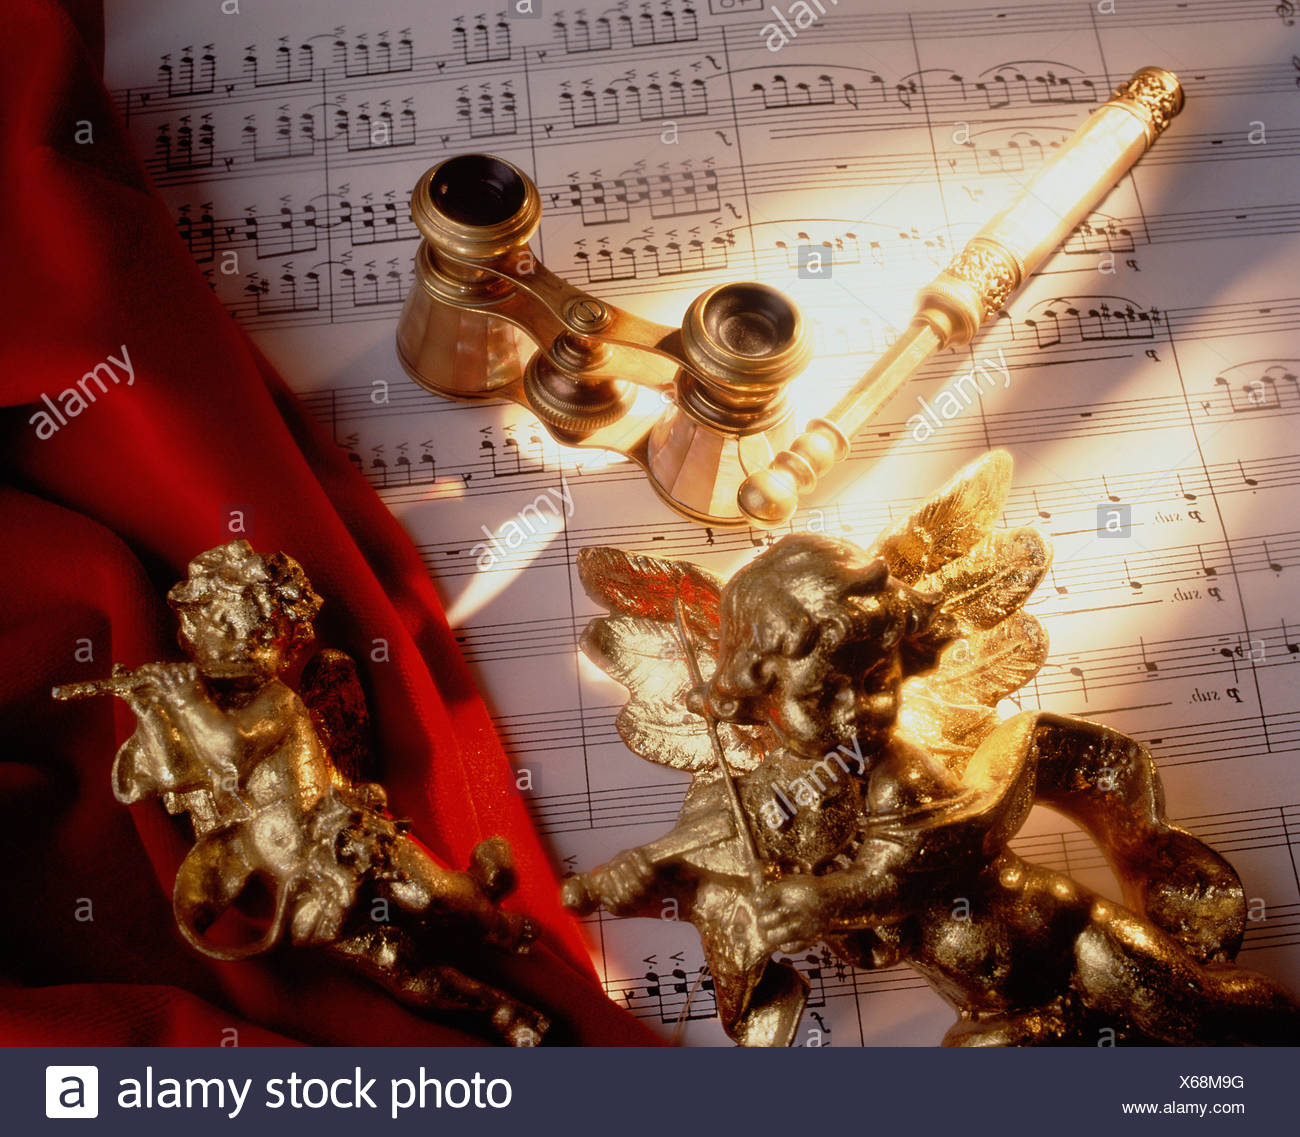 Still life. Music concept with sheet music, opera glasses, gilt cherub figures and conductor's baton. - Stock Image